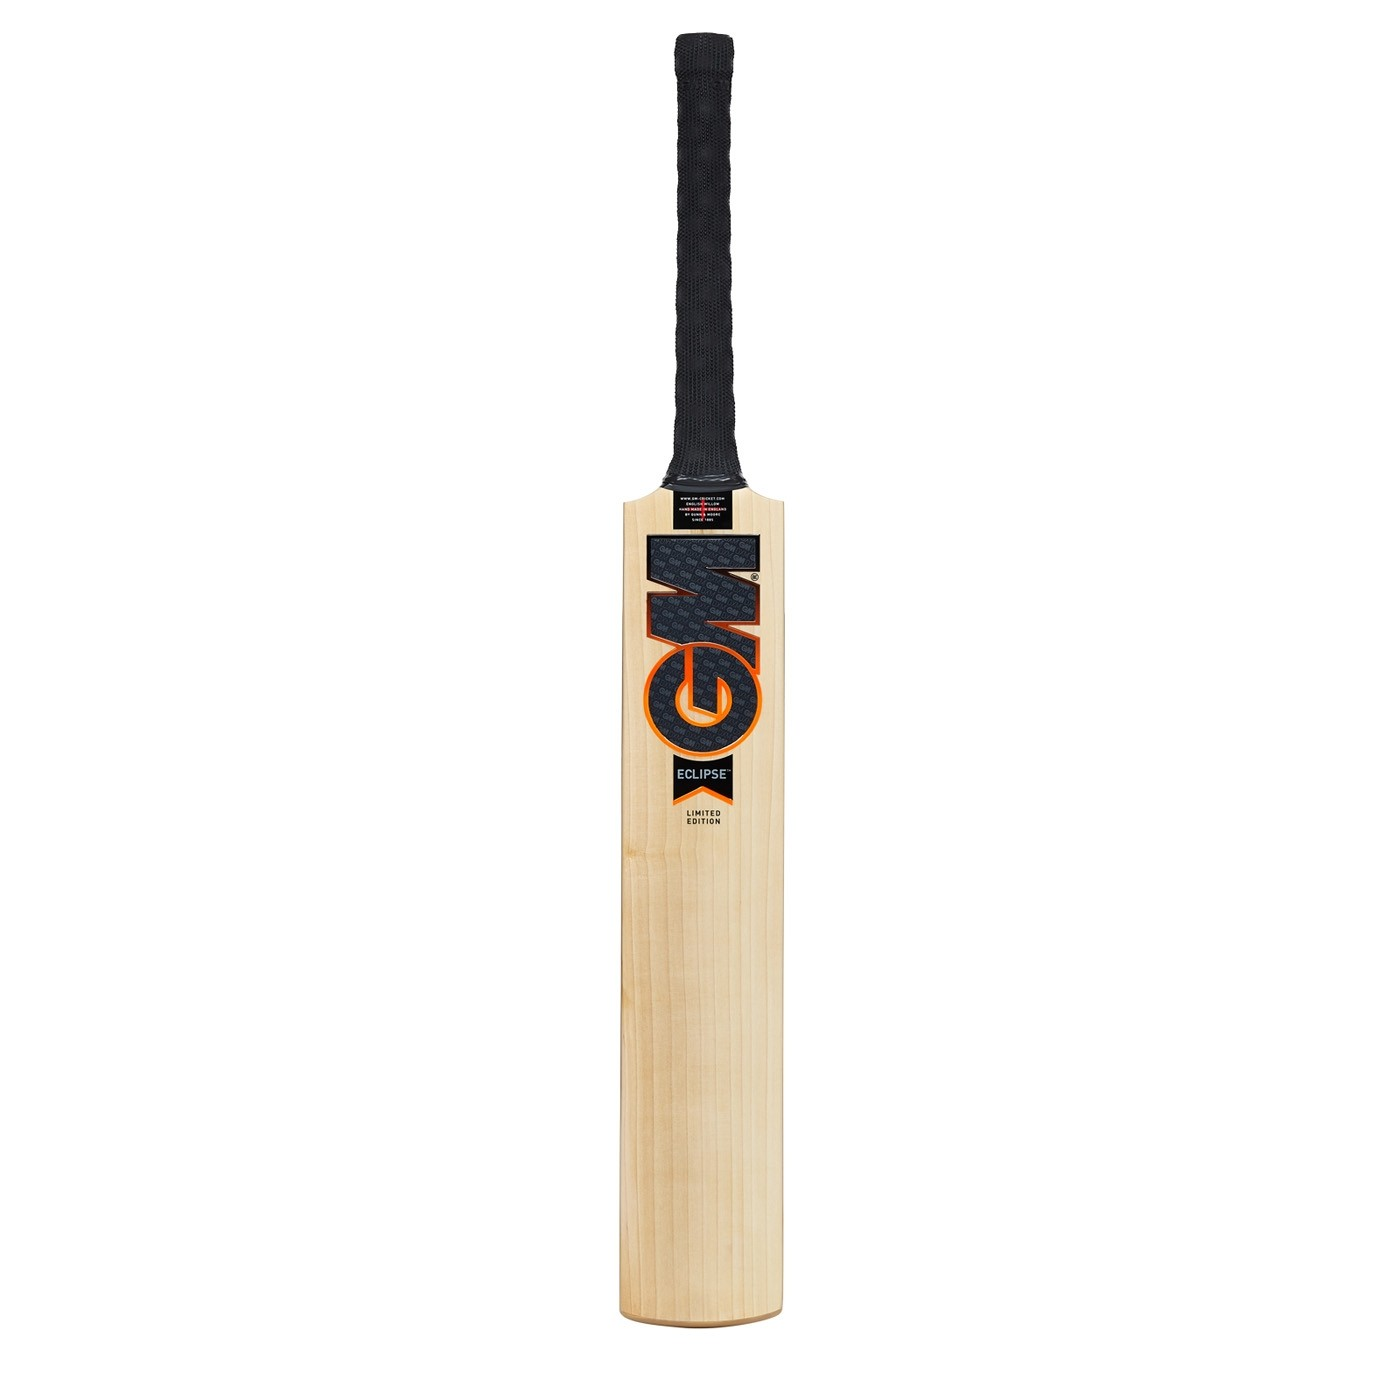 2021 Gunn and Moore Eclipse DXM Limited Edition Cricket Bat